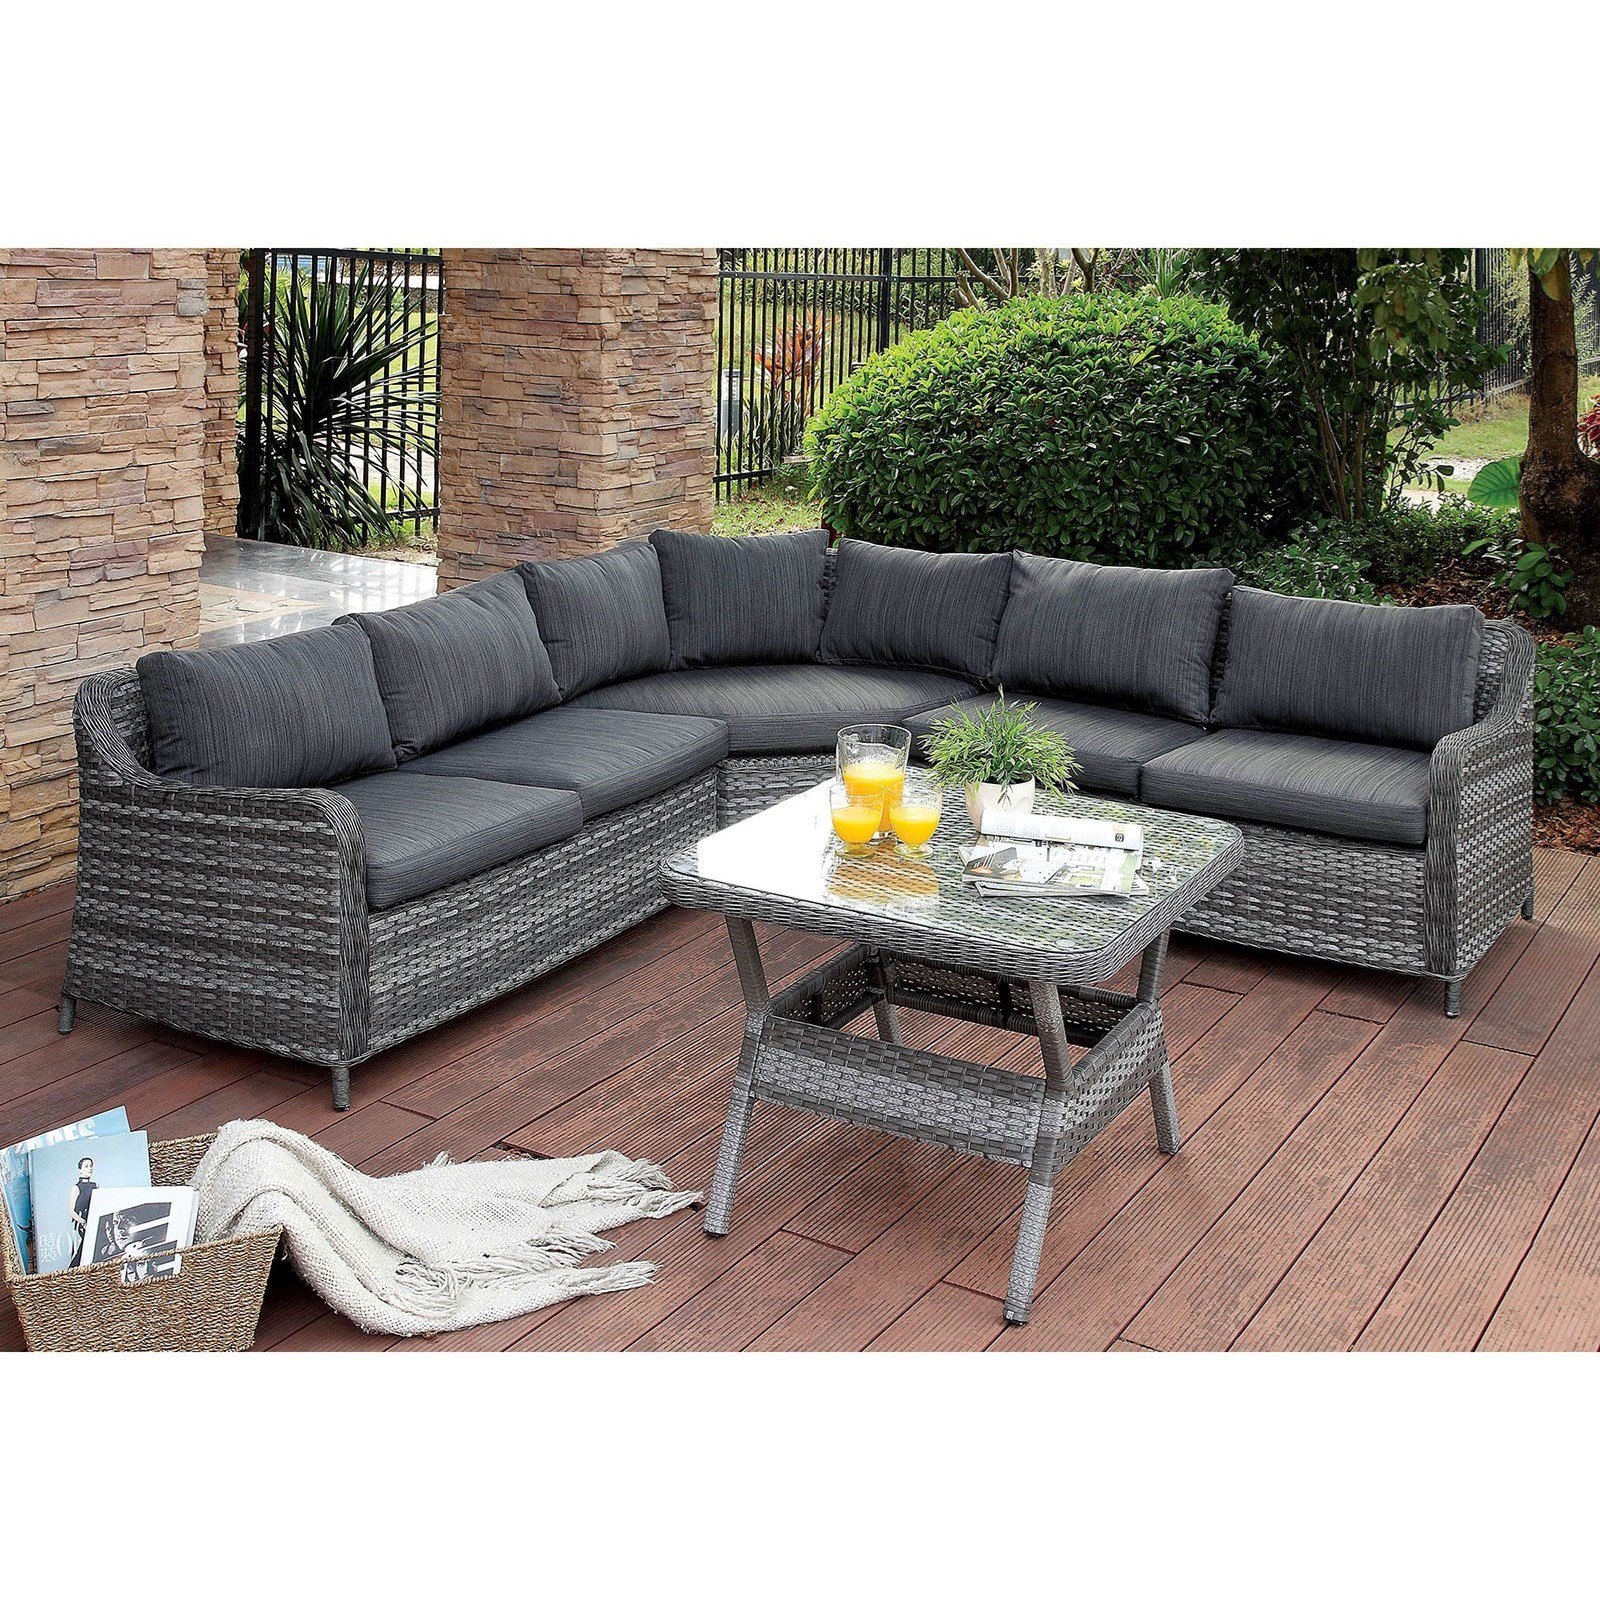 Square Sofa Selina Outdoor Two Tone Wicker Sectional Sofa With Square Glass Top Table Set By Furniture Of America At Rooms For Less